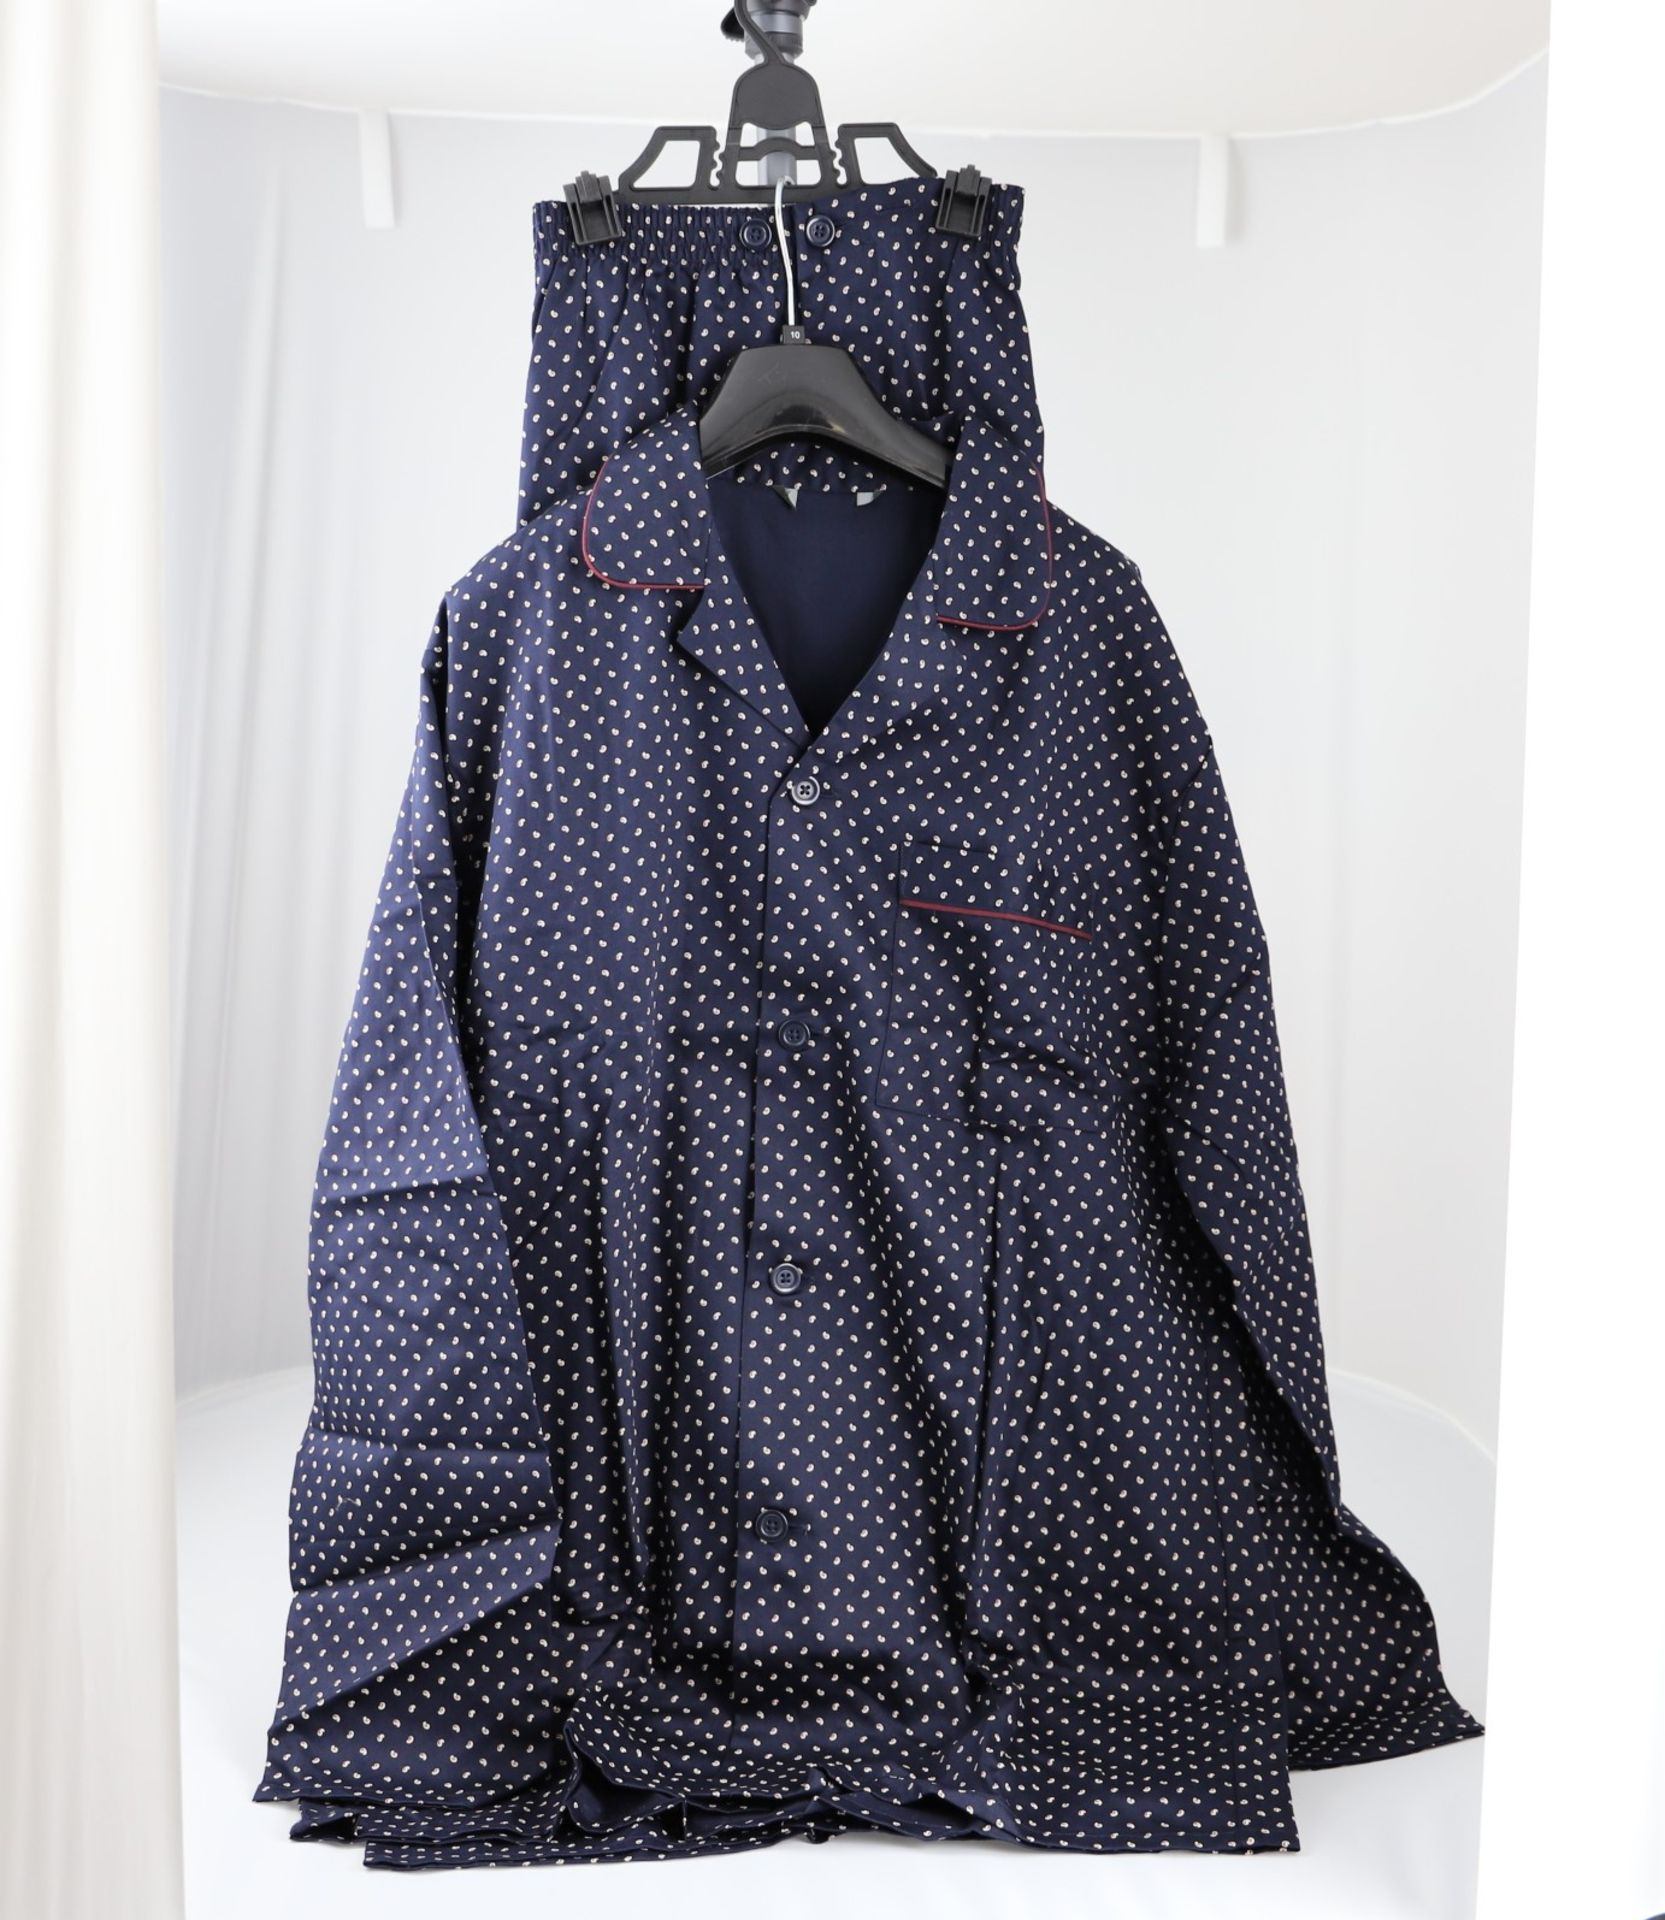 1 x mixed pallet = 94 items of Grade A M&S Menswear Clothing. Total RRP £2574 - Image 4 of 13